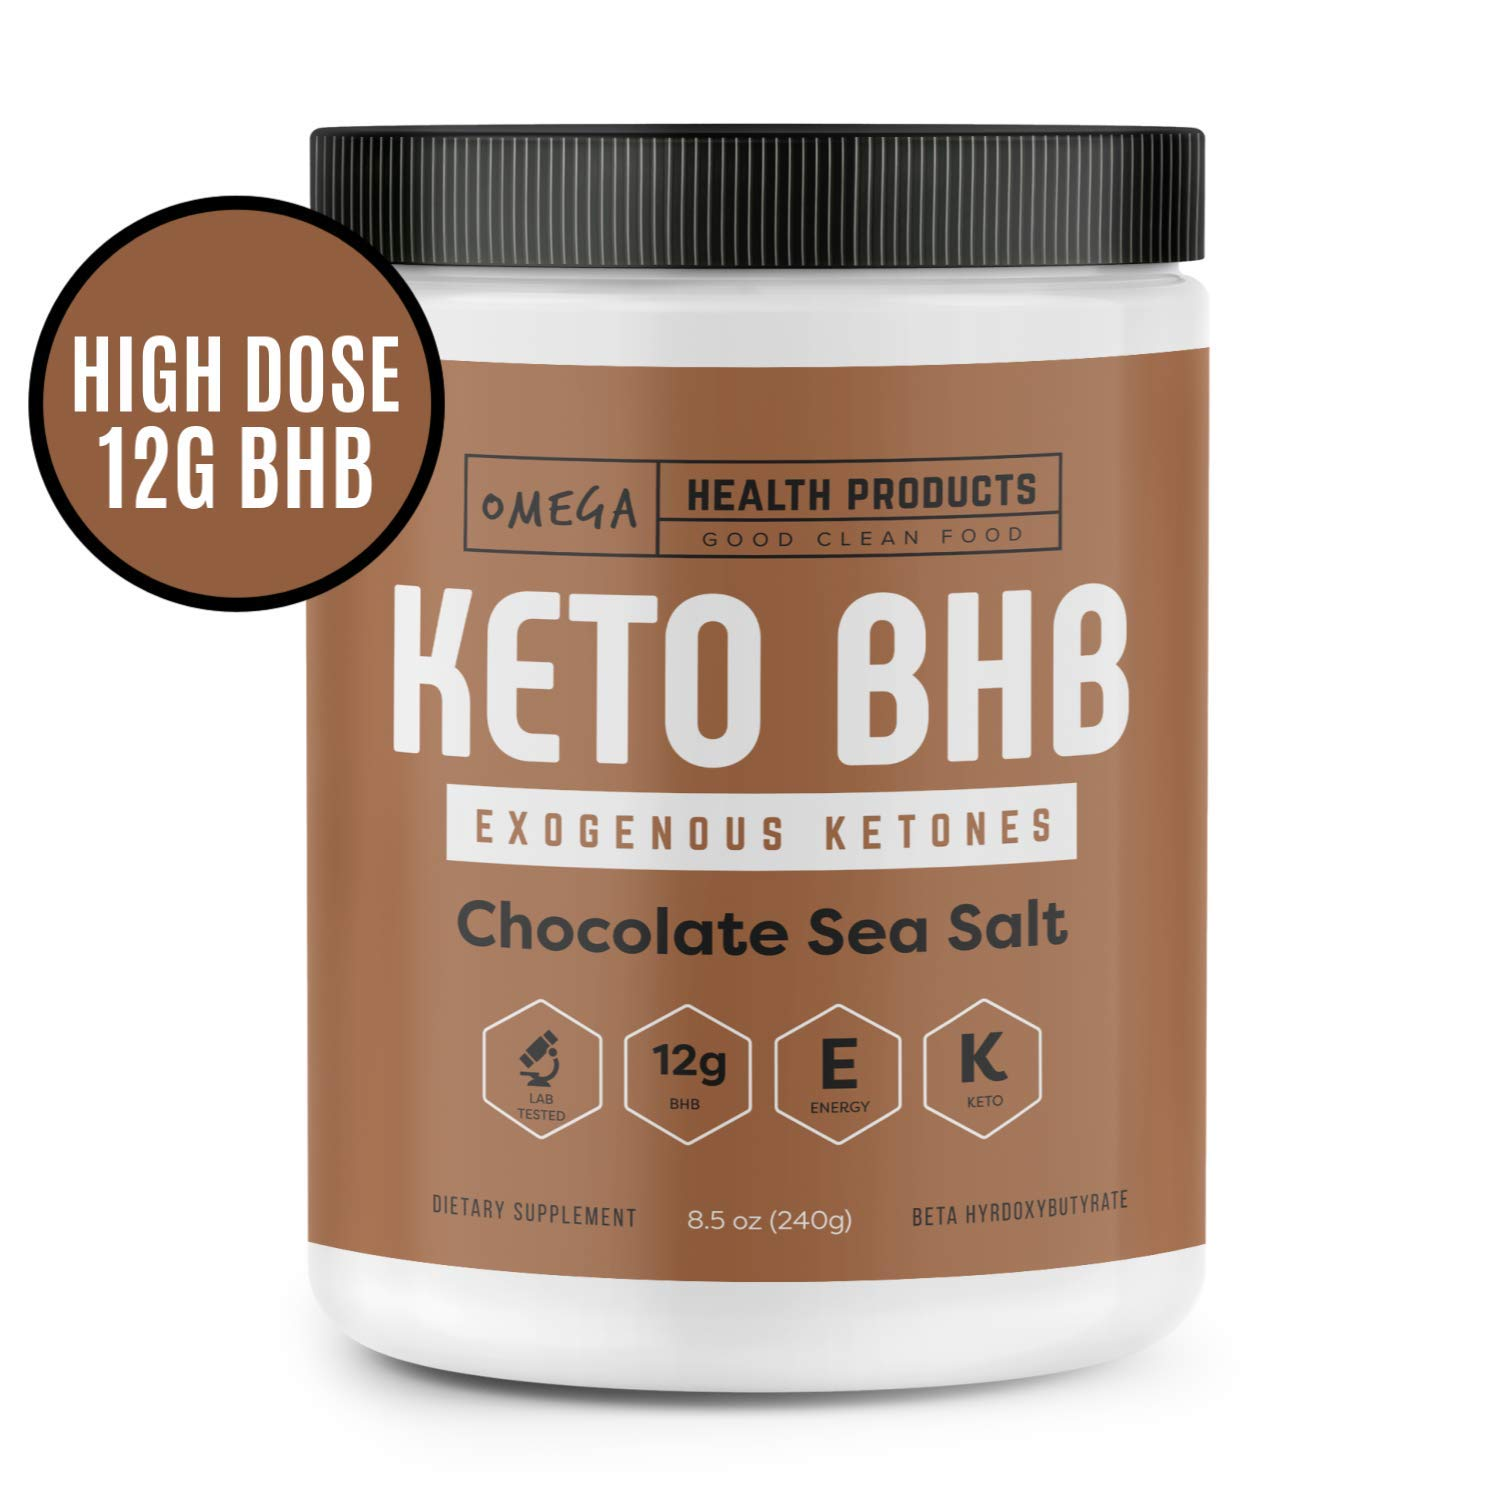 Omega Keto BHB Exogenous Ketones - Chocolate Sea Salt - High Dose Base goBHB Salt Powder | Perfect for Supporting Energy, Mental Focus, Ketosis | Great for Ketogenic Diet (16 Servings)